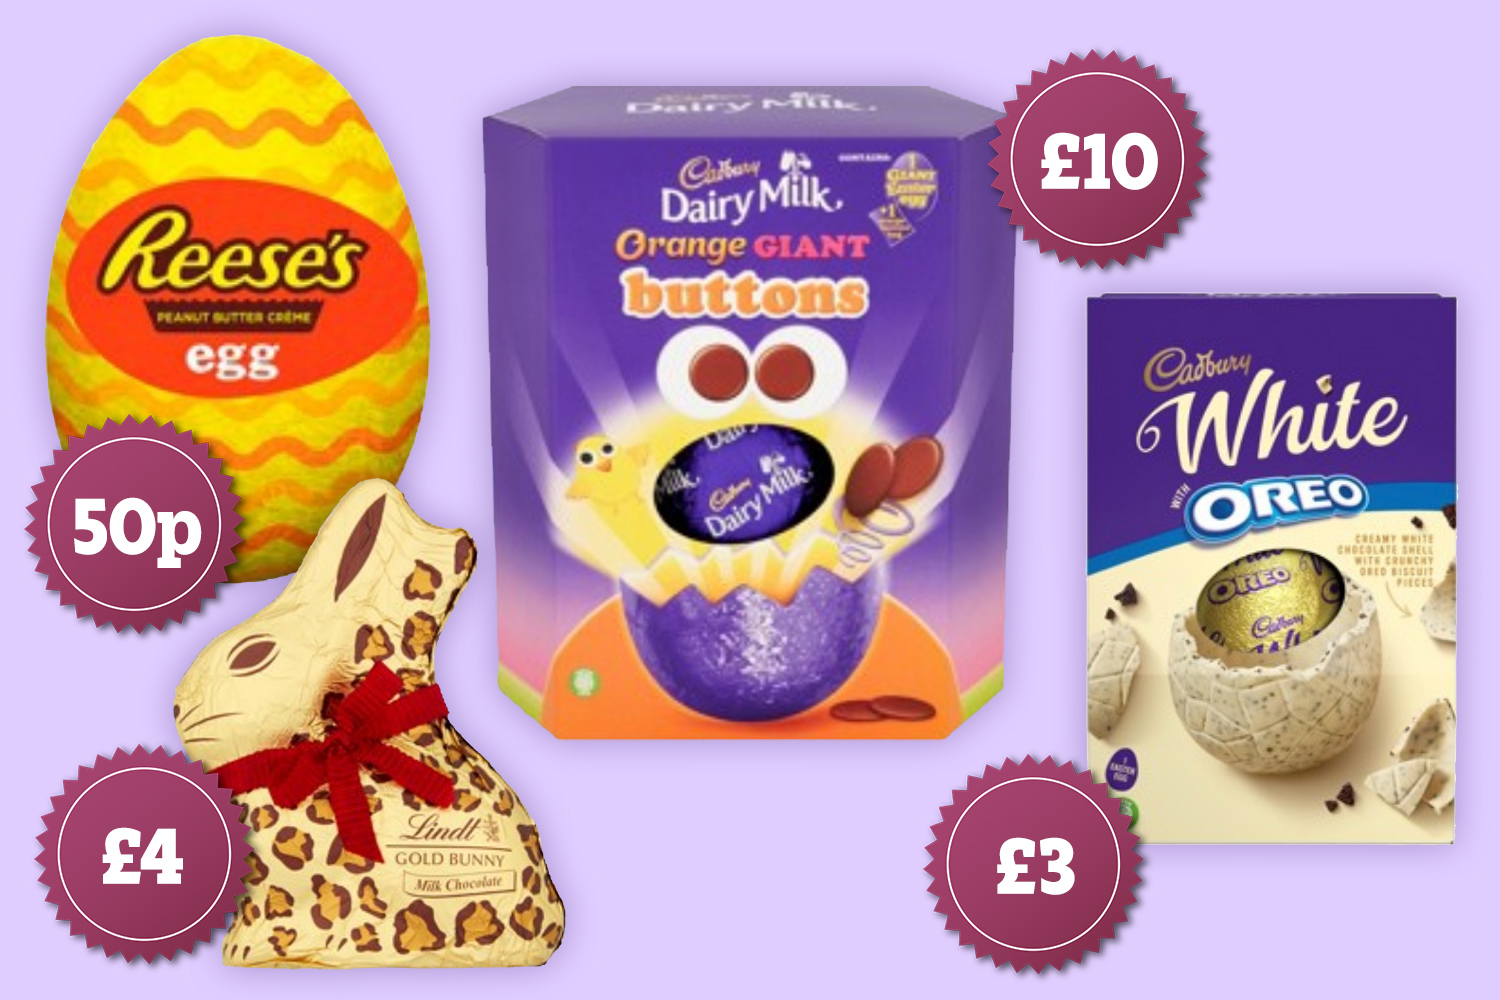 A whole range of EGG-CELLENT offers available